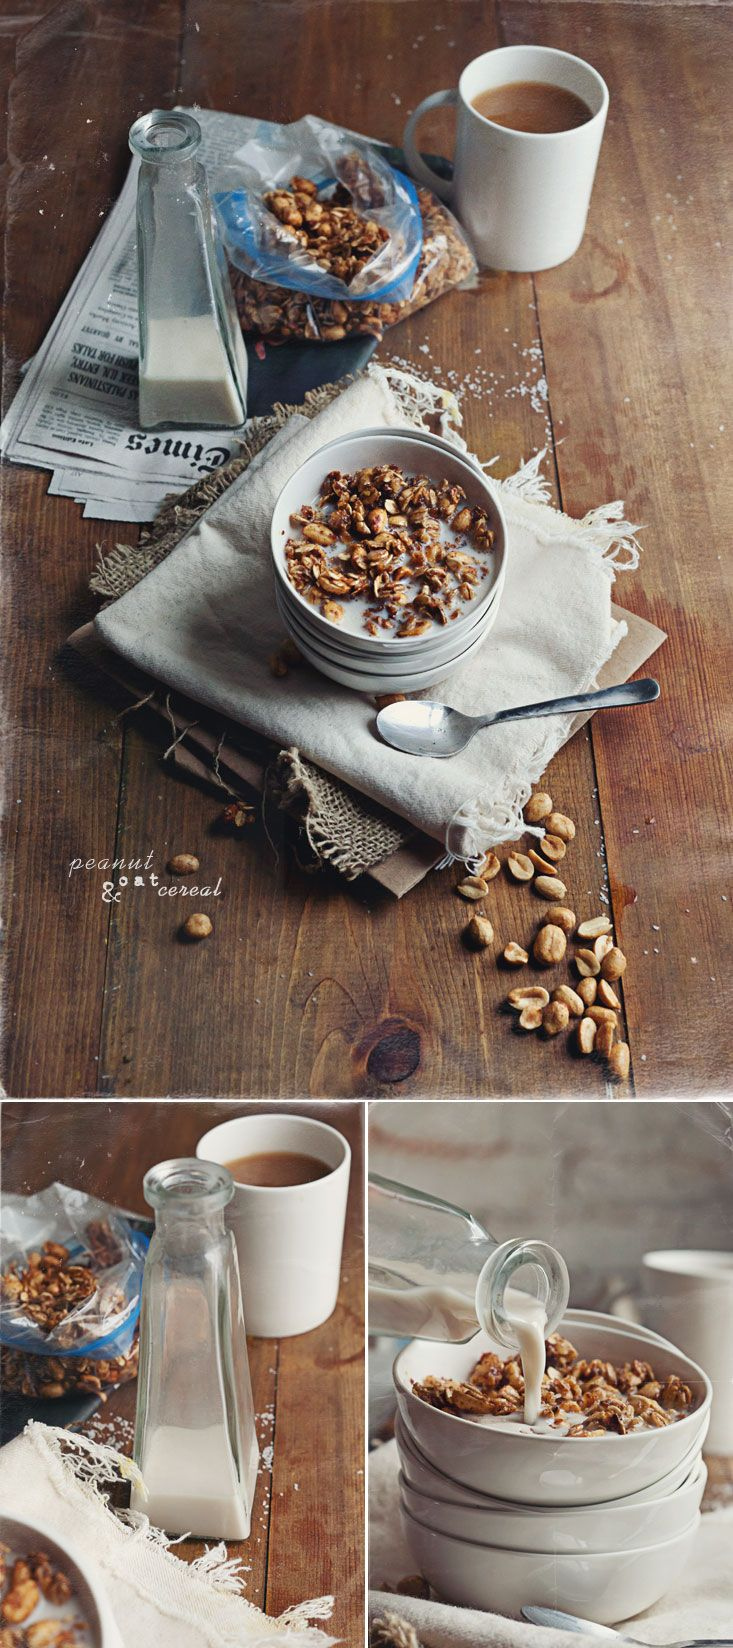 Peanut oat cereal homemade granola i would rather have walnuts peanut oat cereal homemade granola i would rather have walnuts and almonds than peanuts but the overall recipe look simple and healthy ccuart Image collections